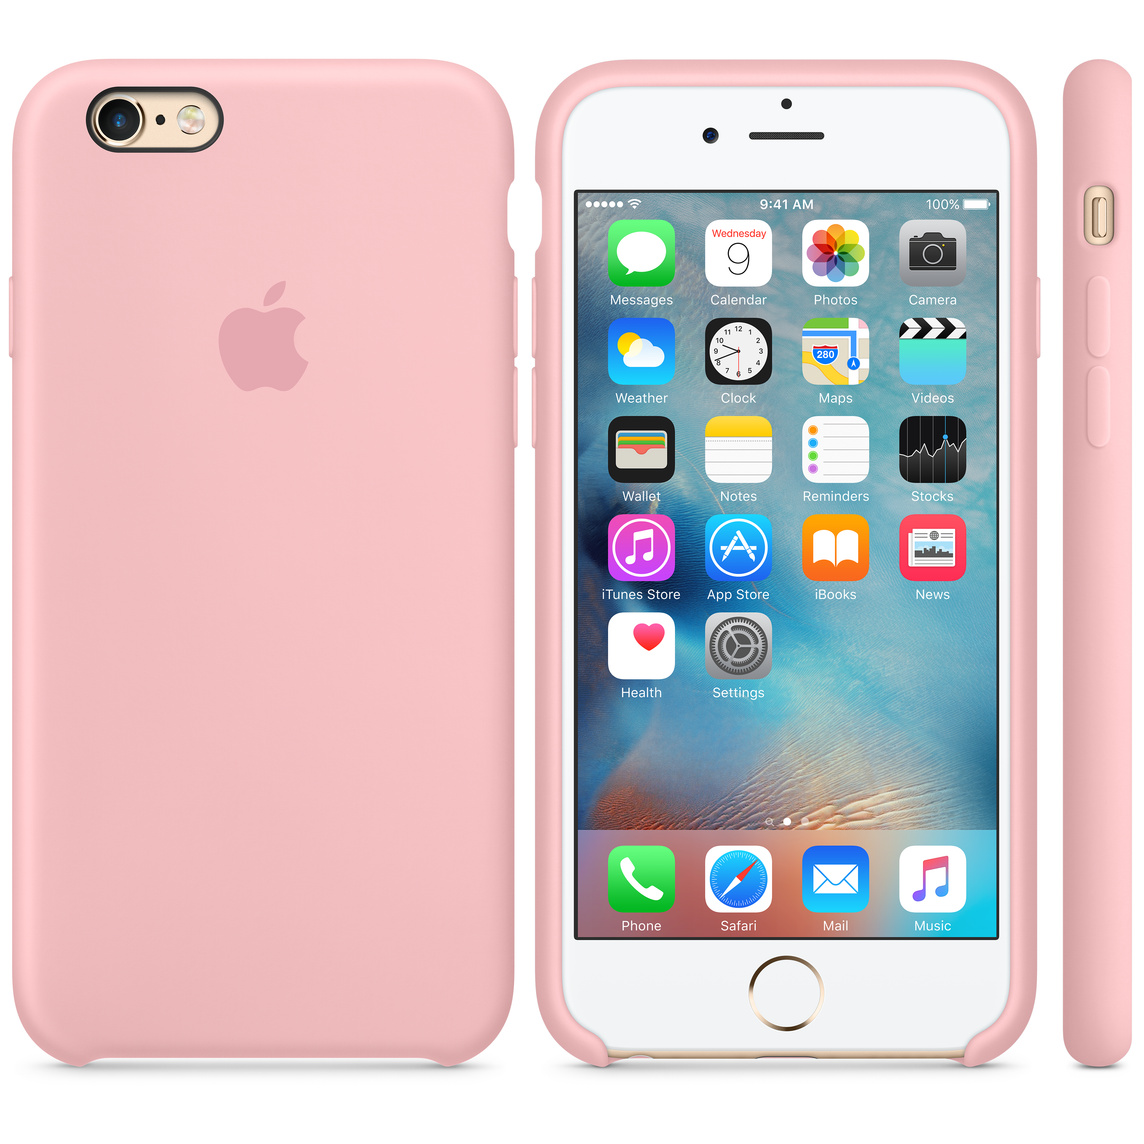 finest selection 6c3b2 ab77b iPhone 6 / 6s Silicone Case - Pink